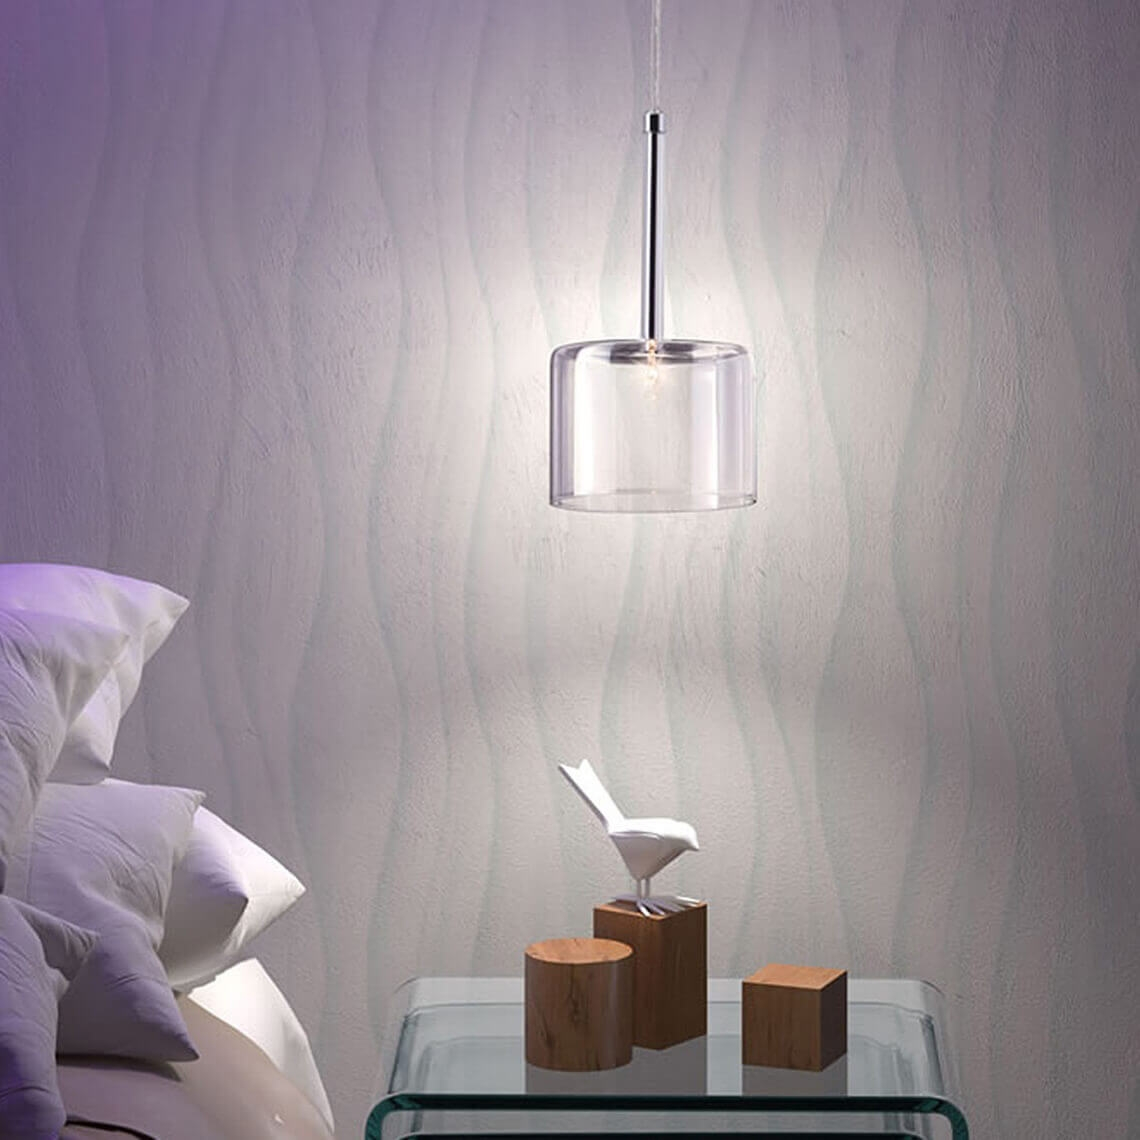 Glass pendant light environmental view